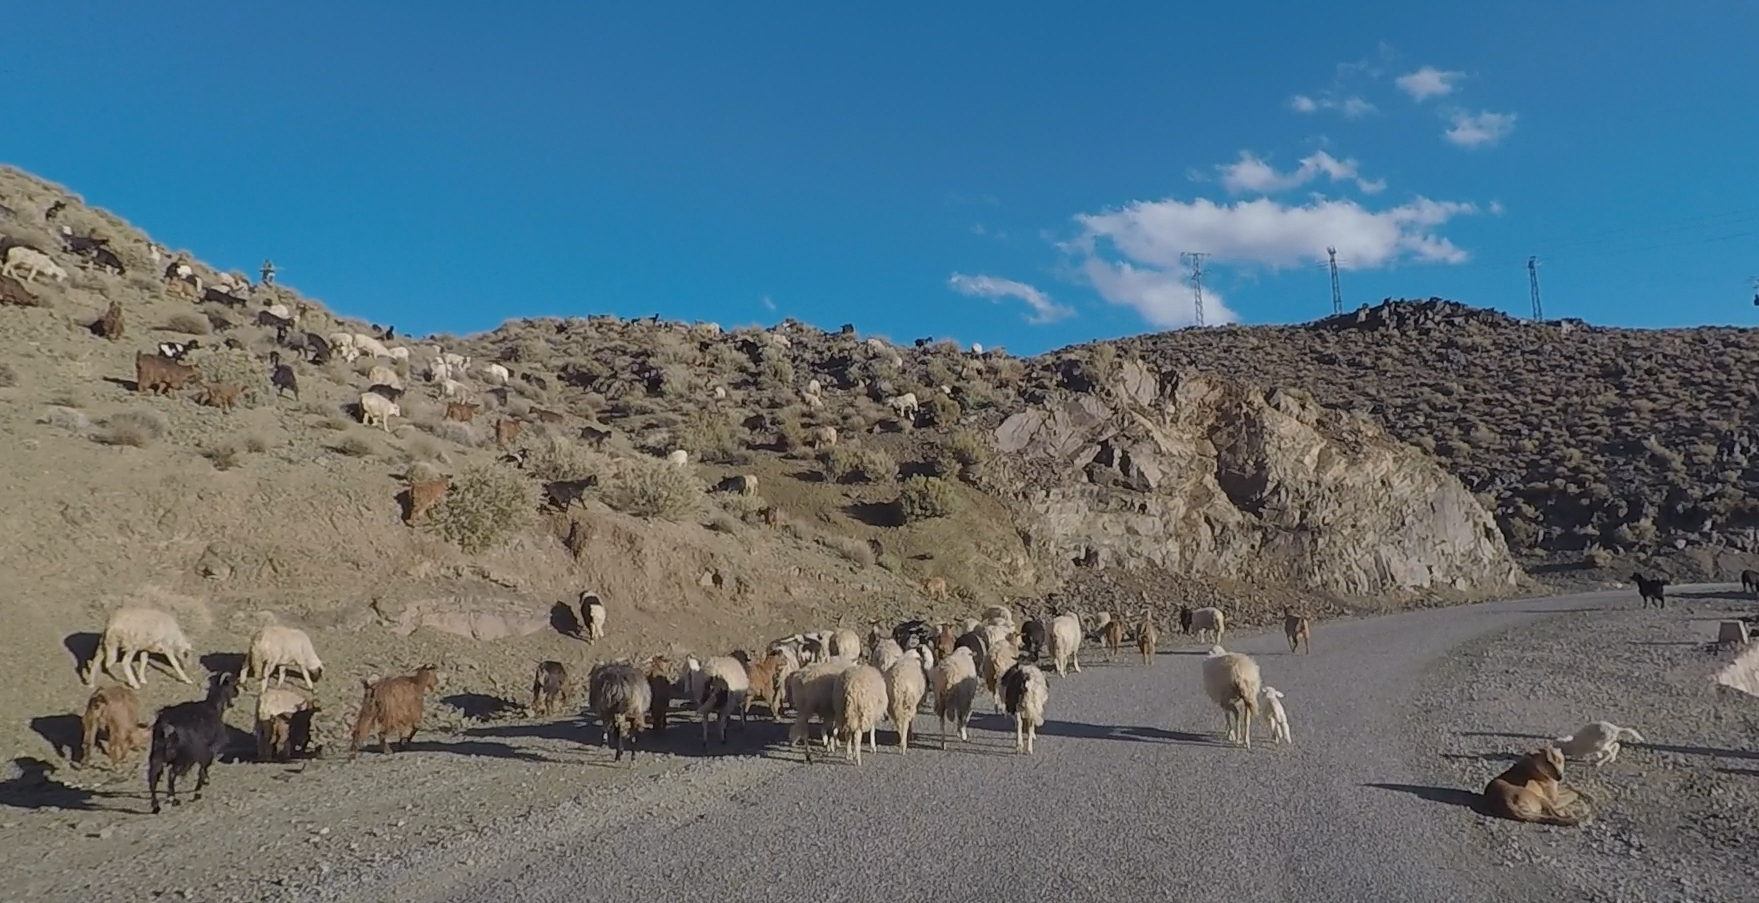 Typical traffic jam in the rural areas of Morocco!